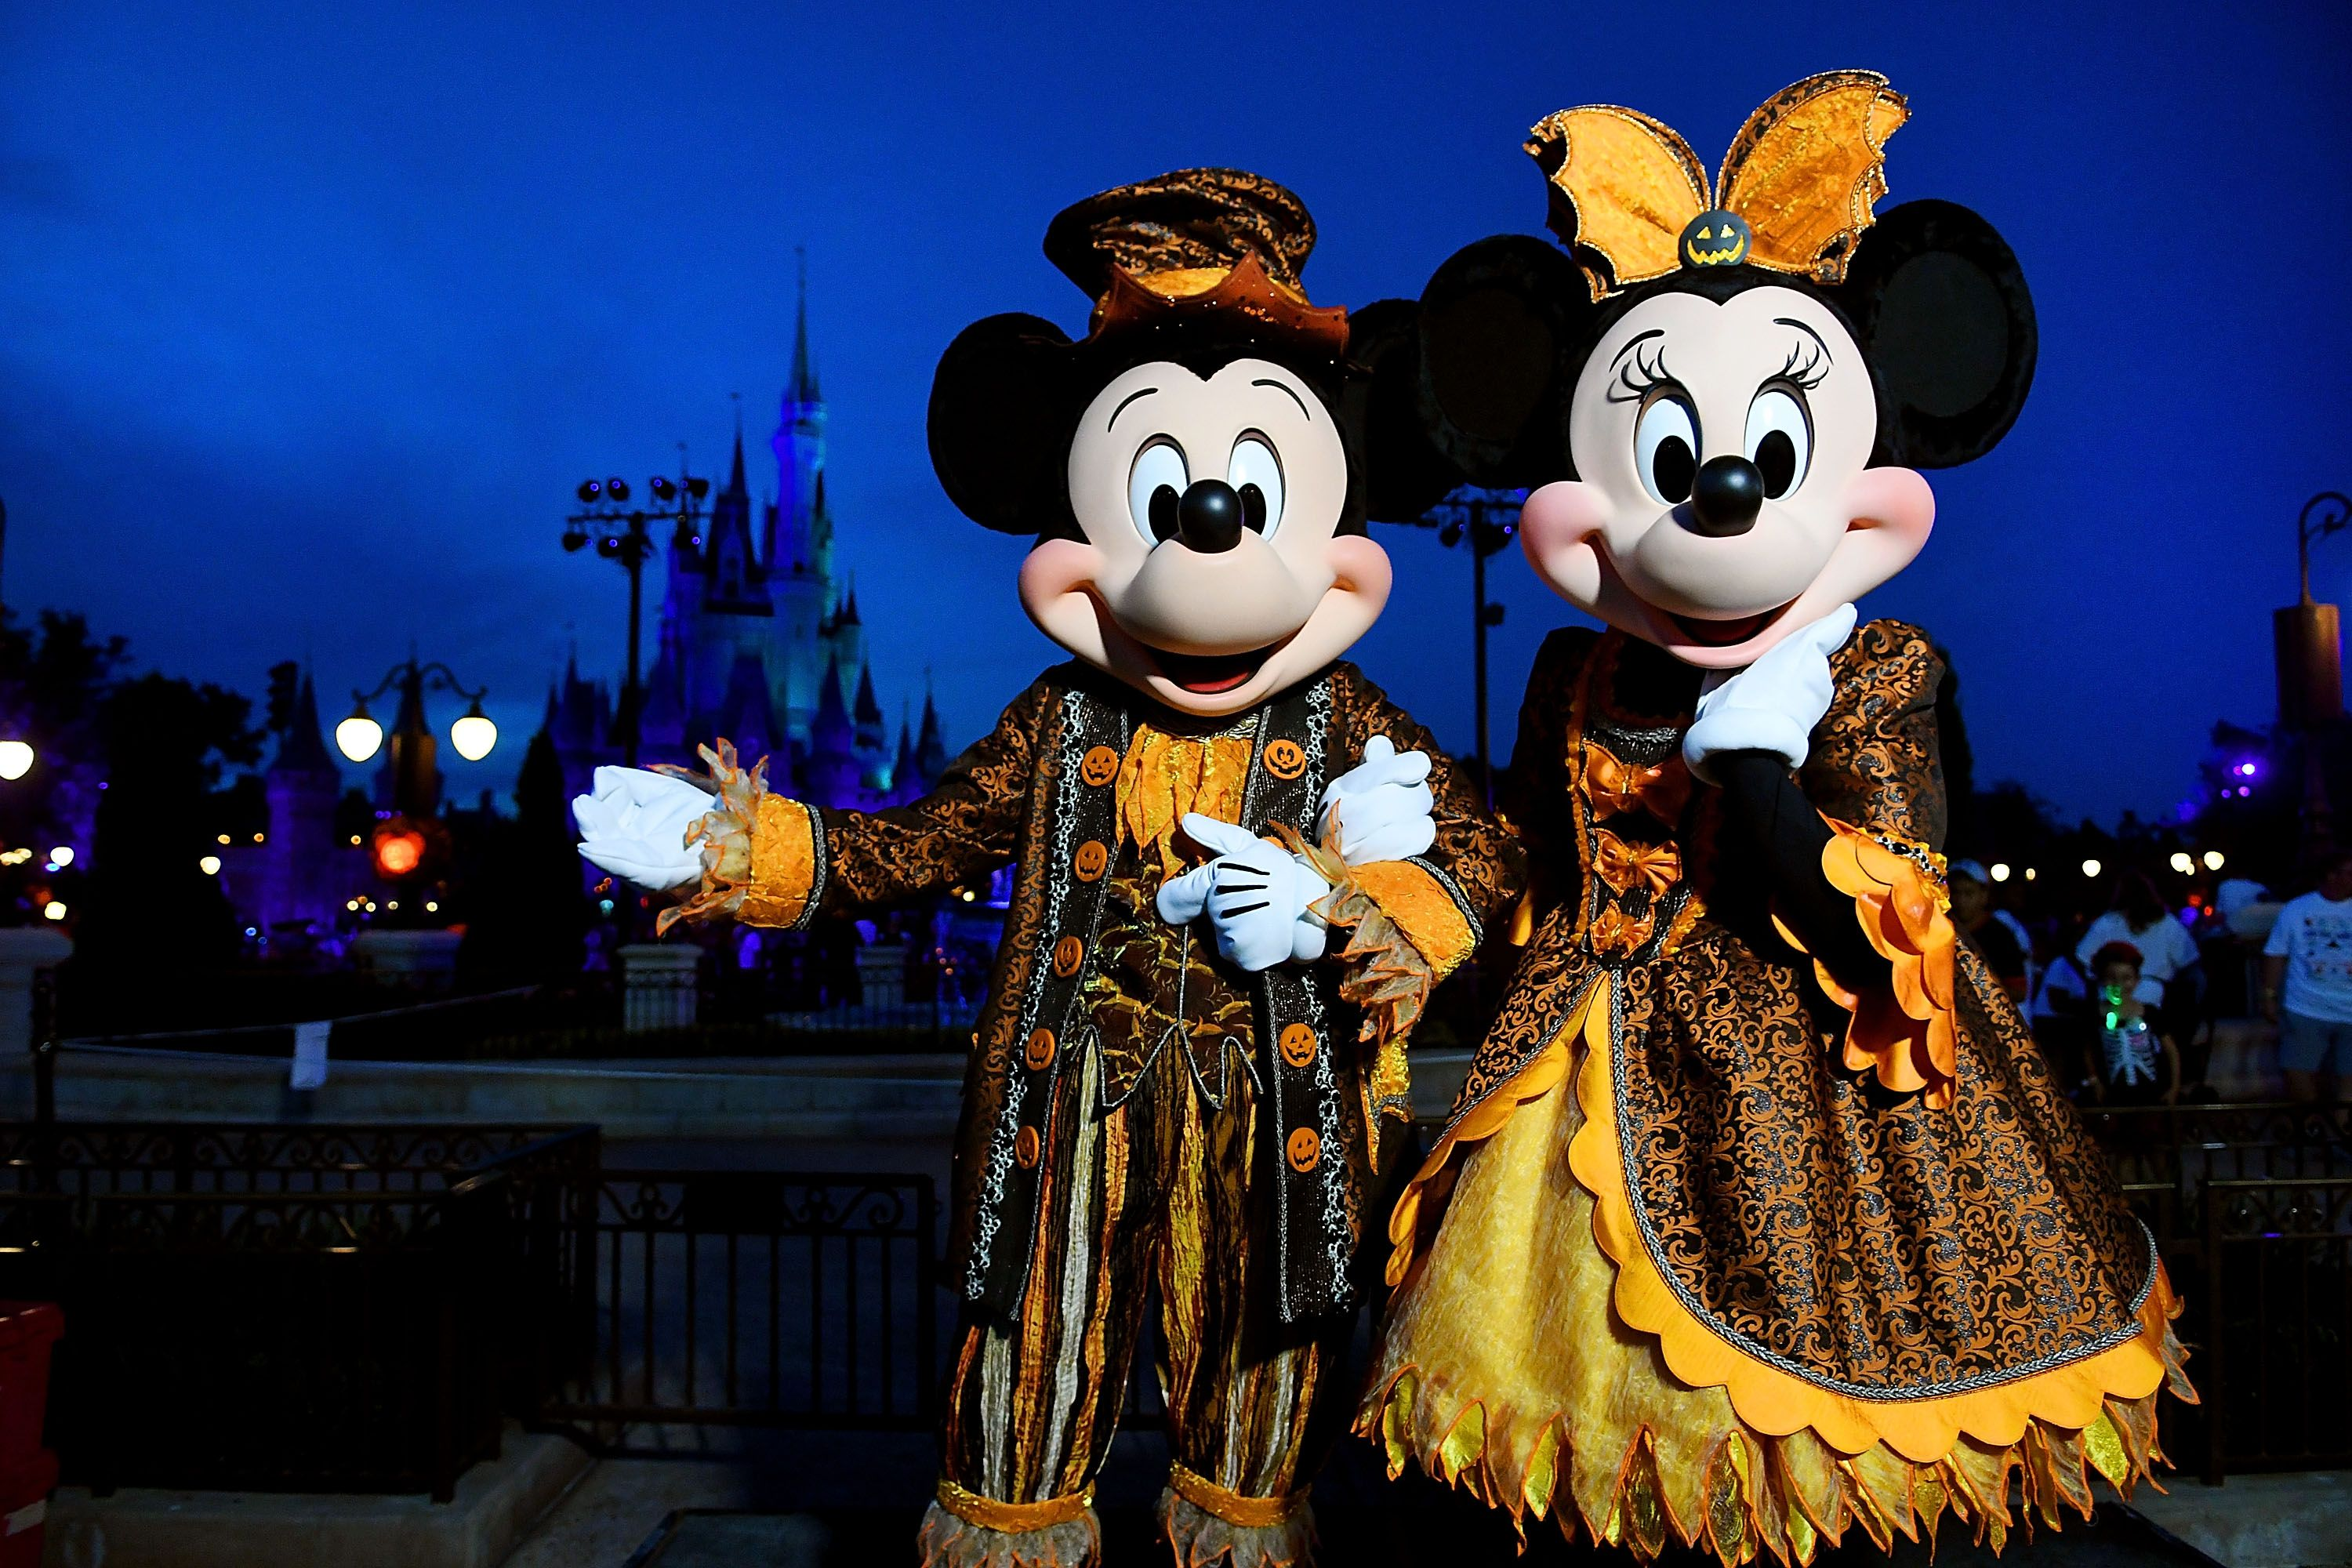 Disney Halloween Festival 2020 Here Are the Events That Disney World Has Cancelled Through 2020